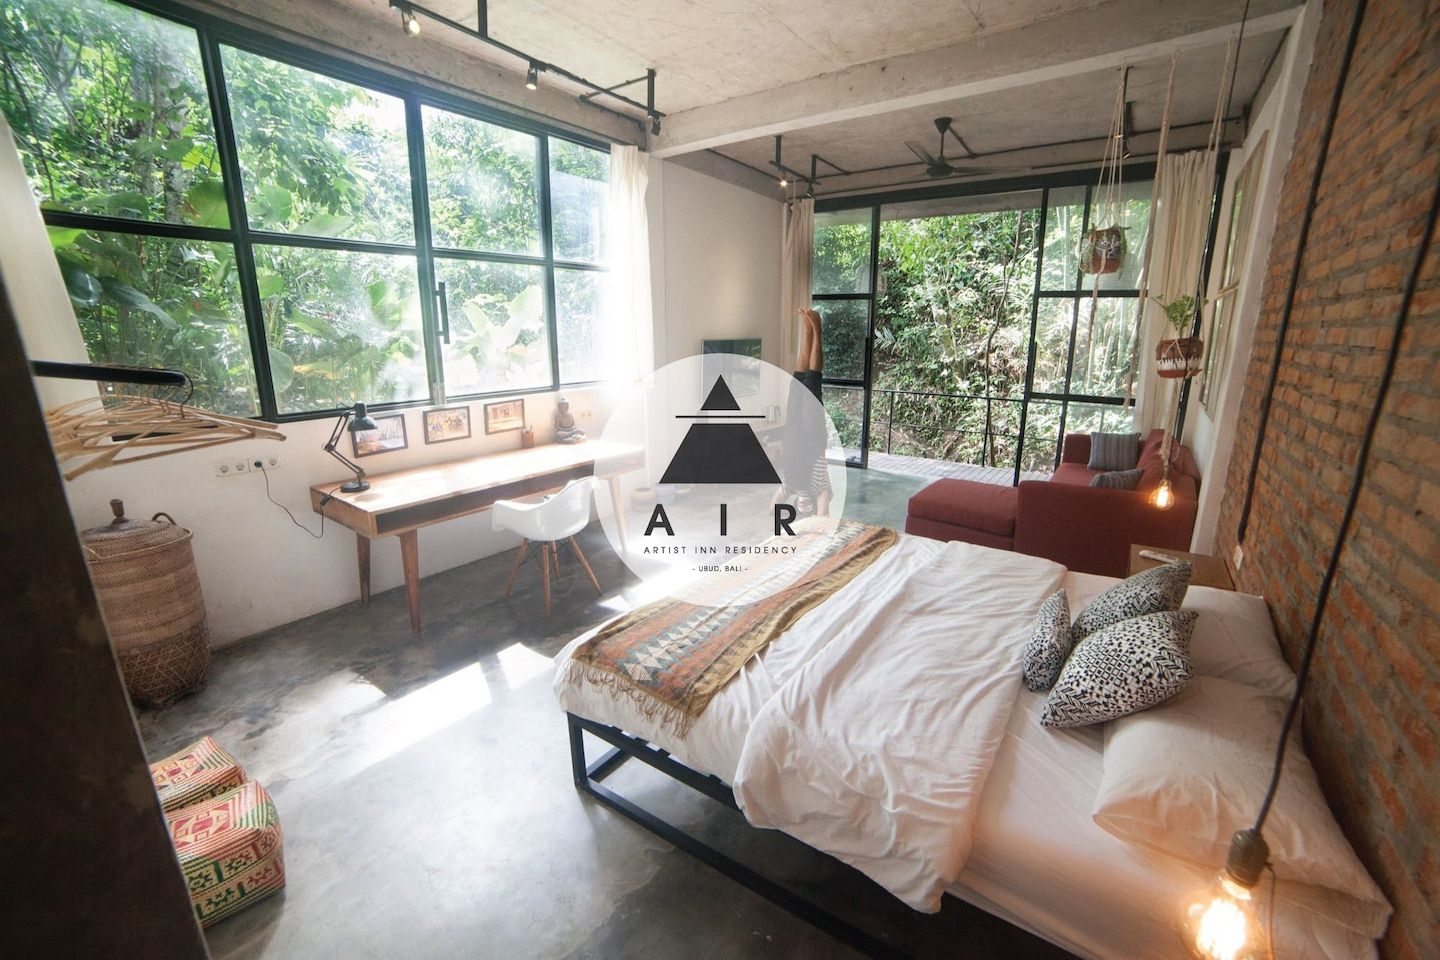 River View Room in Artist Residency 1 Bed and